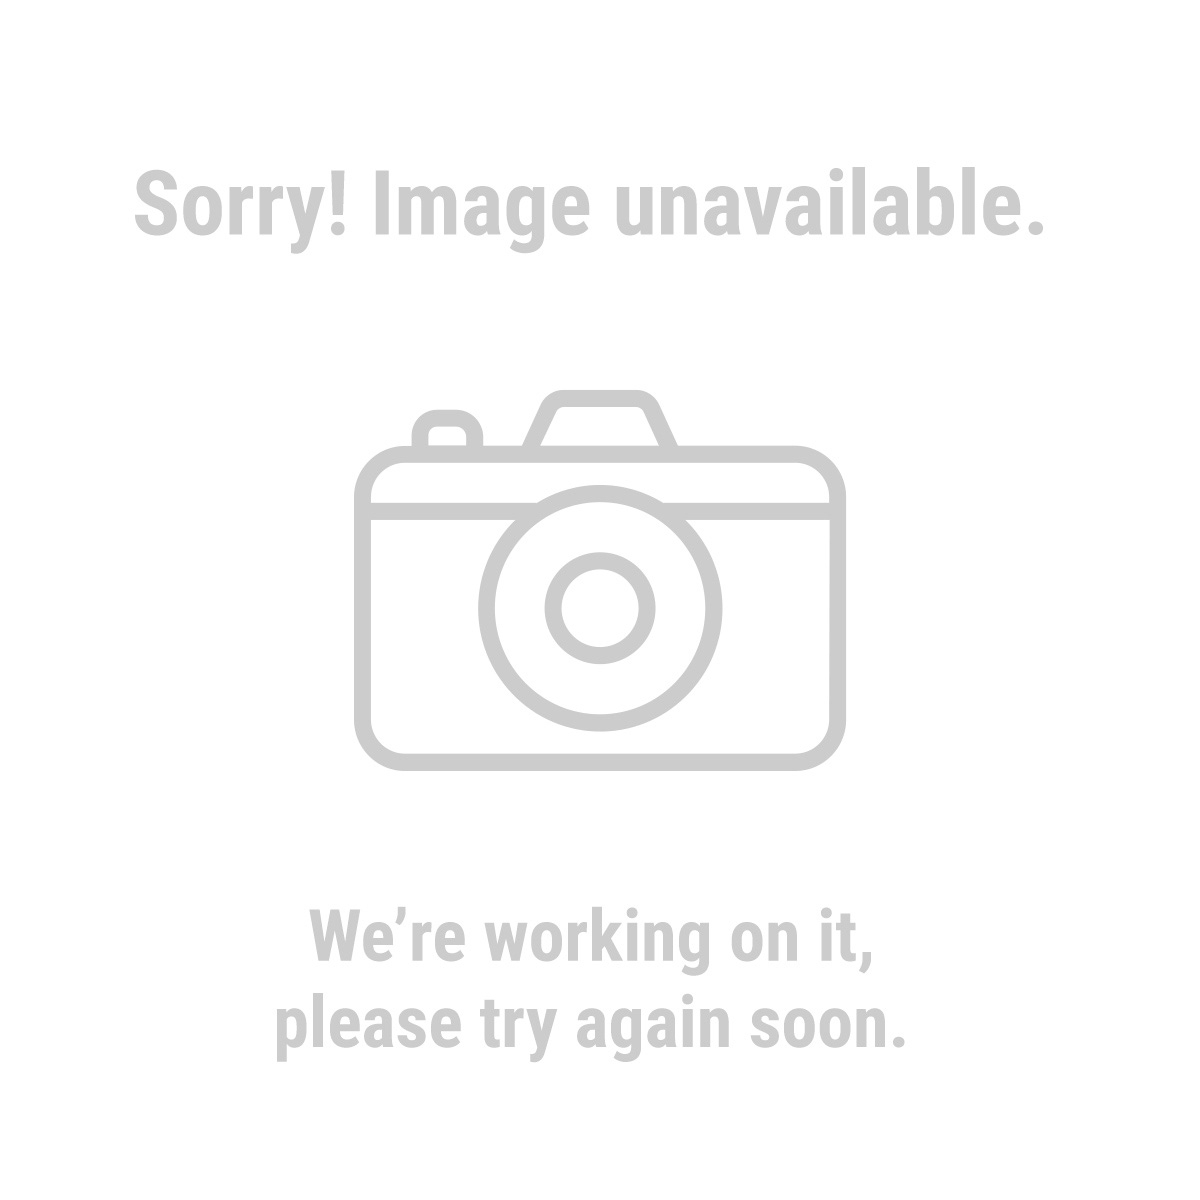 Badland® 62596 9000 lb. Off-Road Vehicle Electric Winch with Automatic Load-Holding Brake